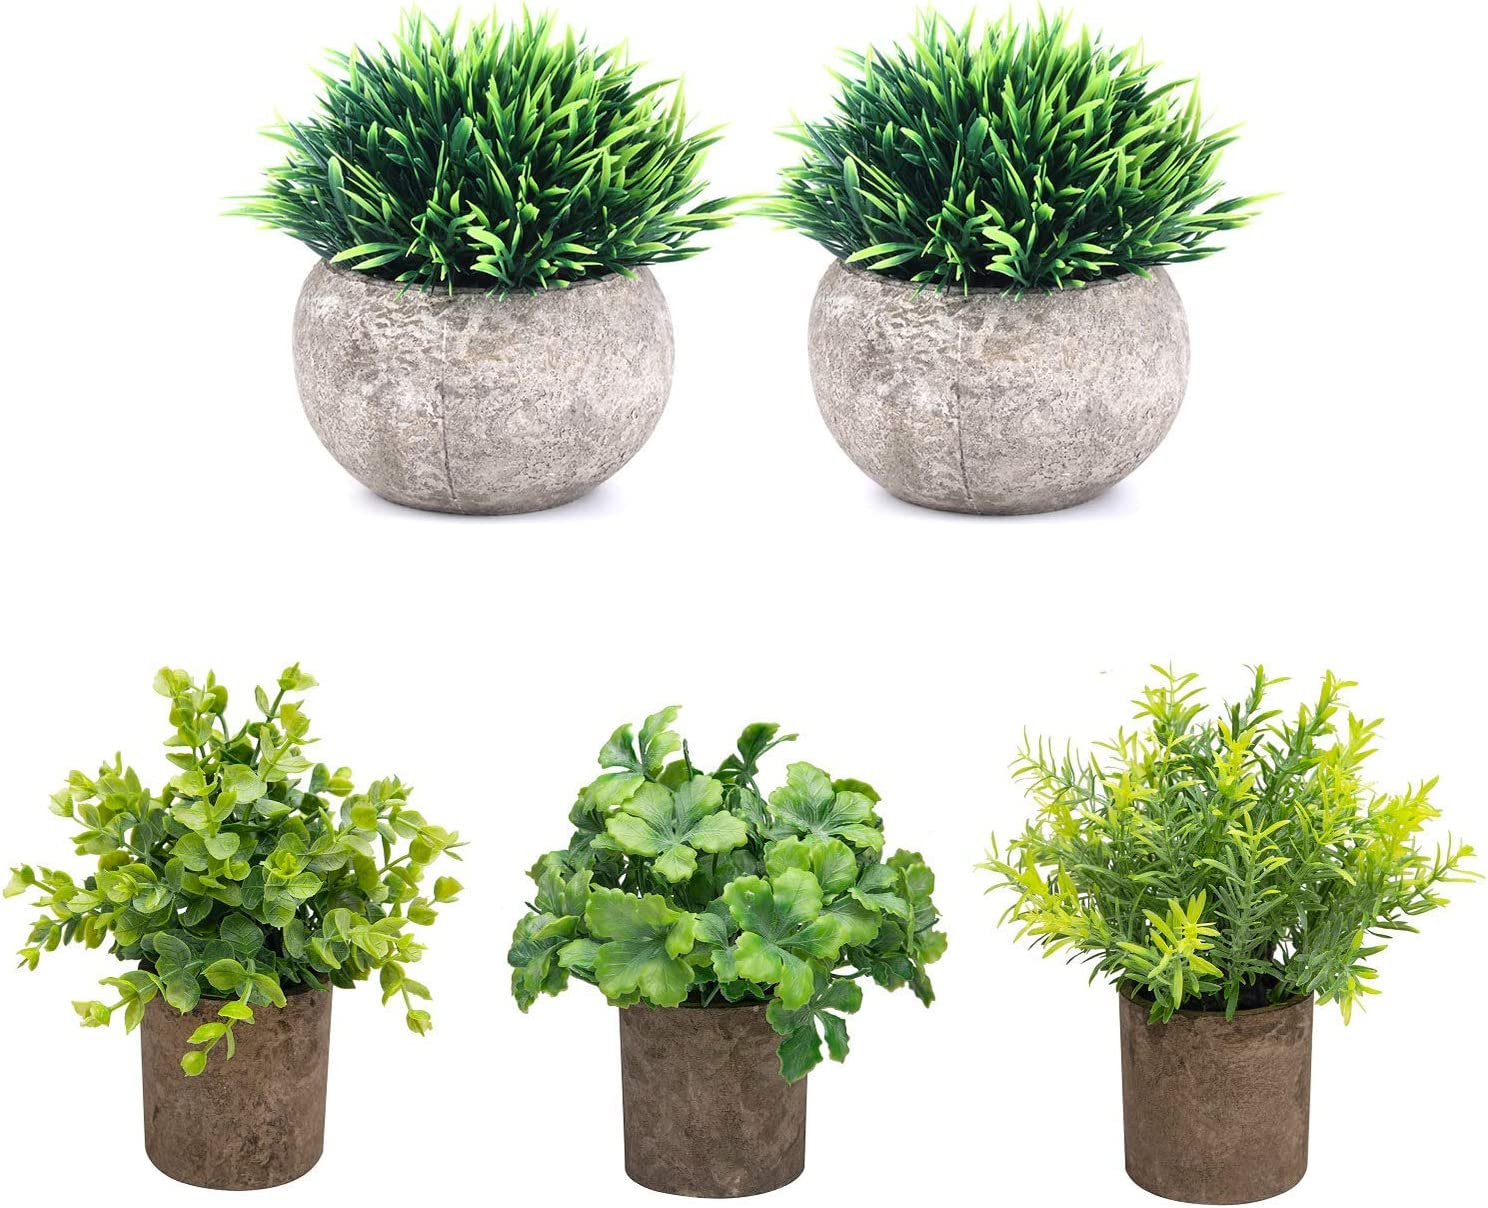 THE BLOOM TIMES Set of 5 Small Fake Plants Plastic Rustic Faux Potted Greenery Eucalyptus Boxwood Artificial Plants in Pots for Home Office Desk Farmhouse Bathroom Kitchen Shelf Indoor Decor